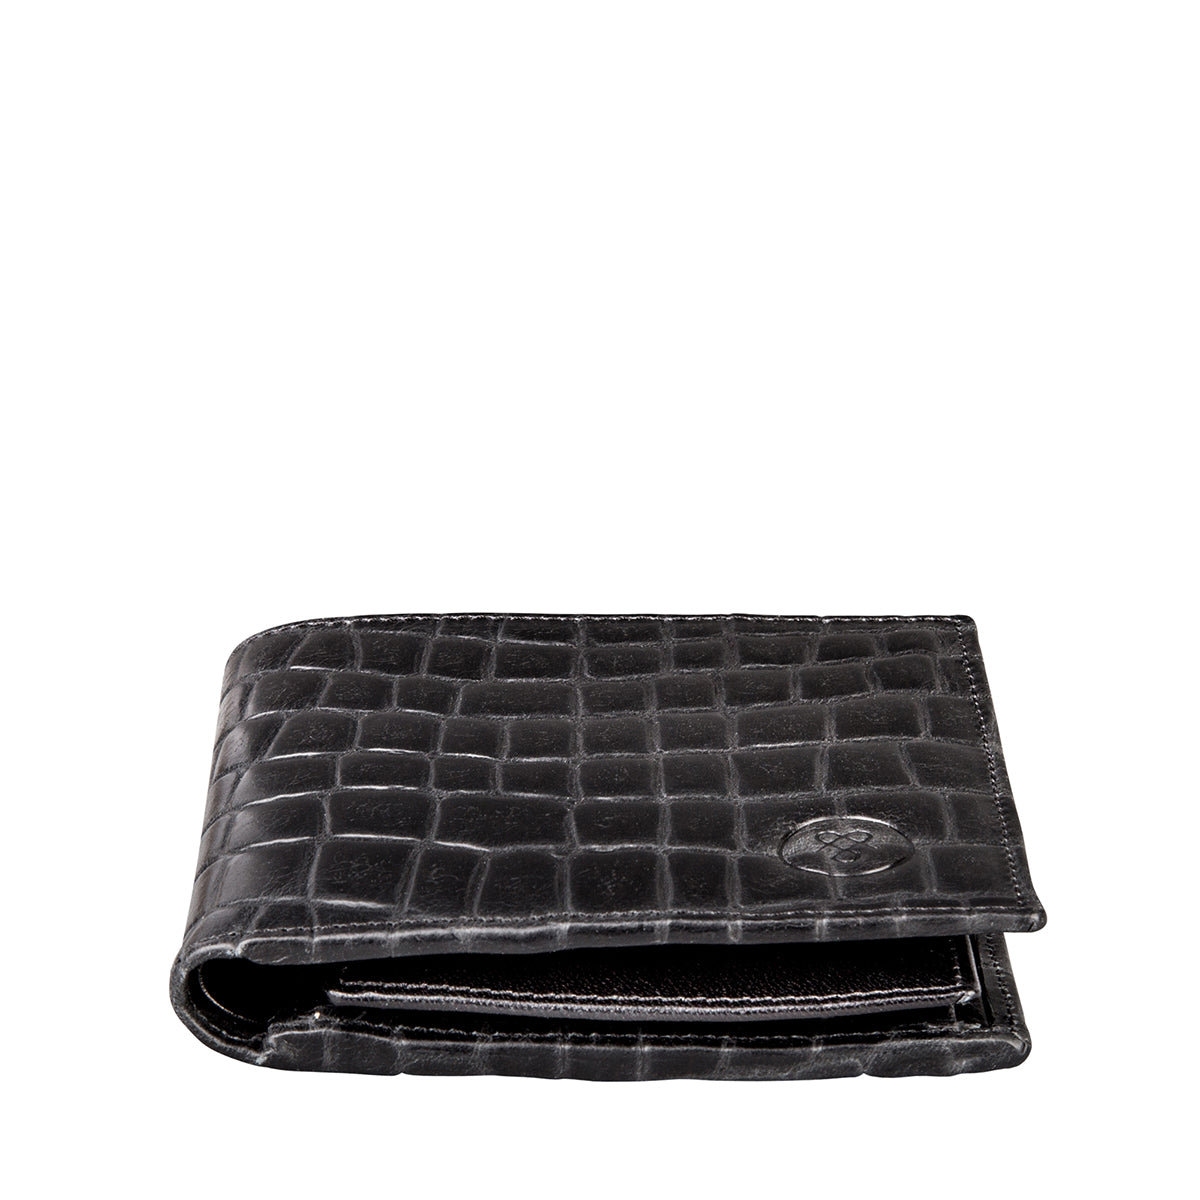 Image 3 of the 'Ticciano' Black Mens Mock Croc Wallet with Coin Pocket